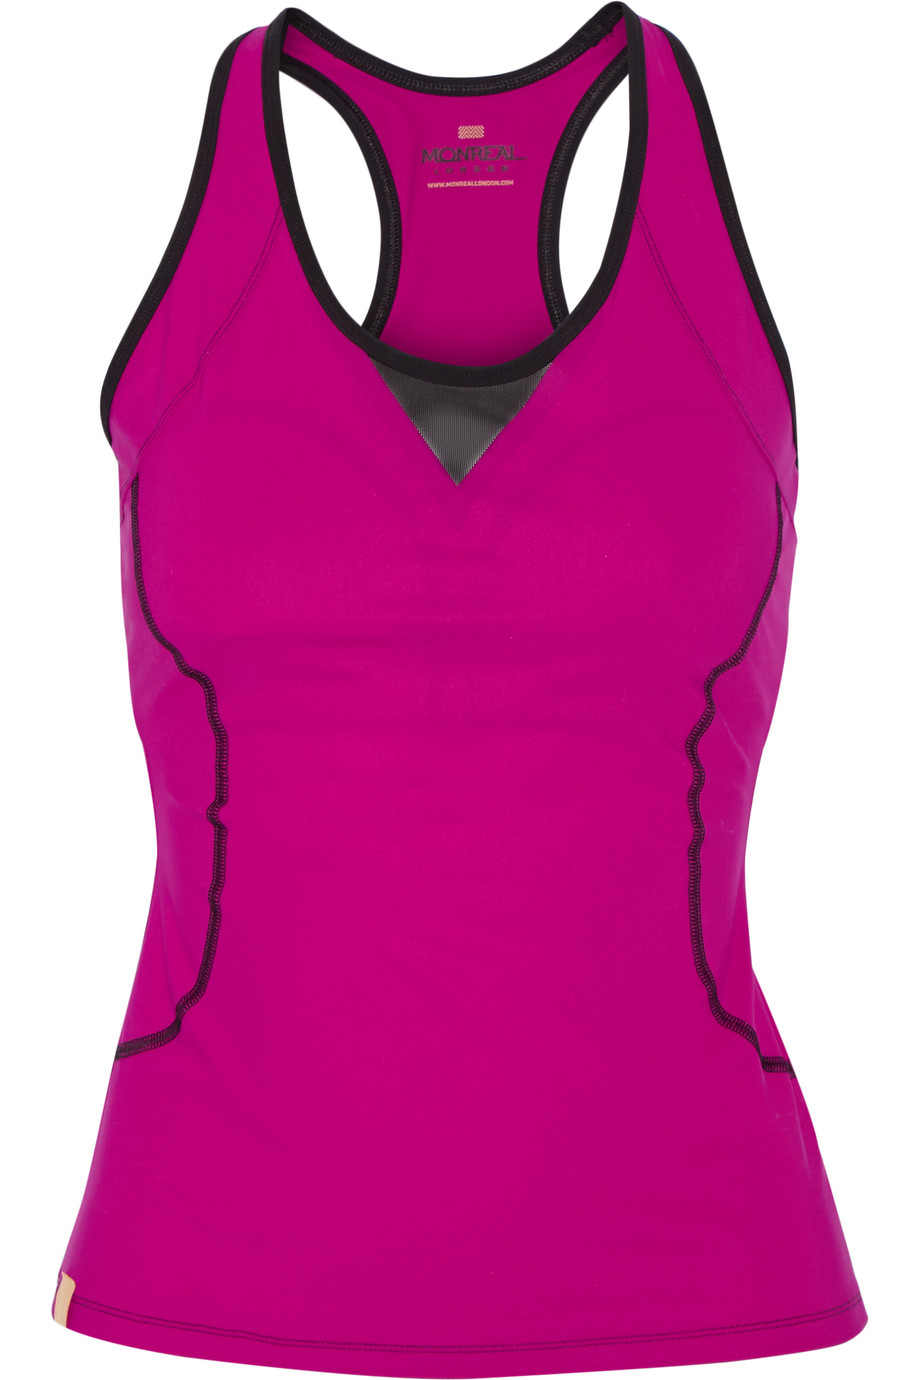 Monreal London Speed Mesh-Trimmed Stretch-Jersey Tank, Magenta, Women's